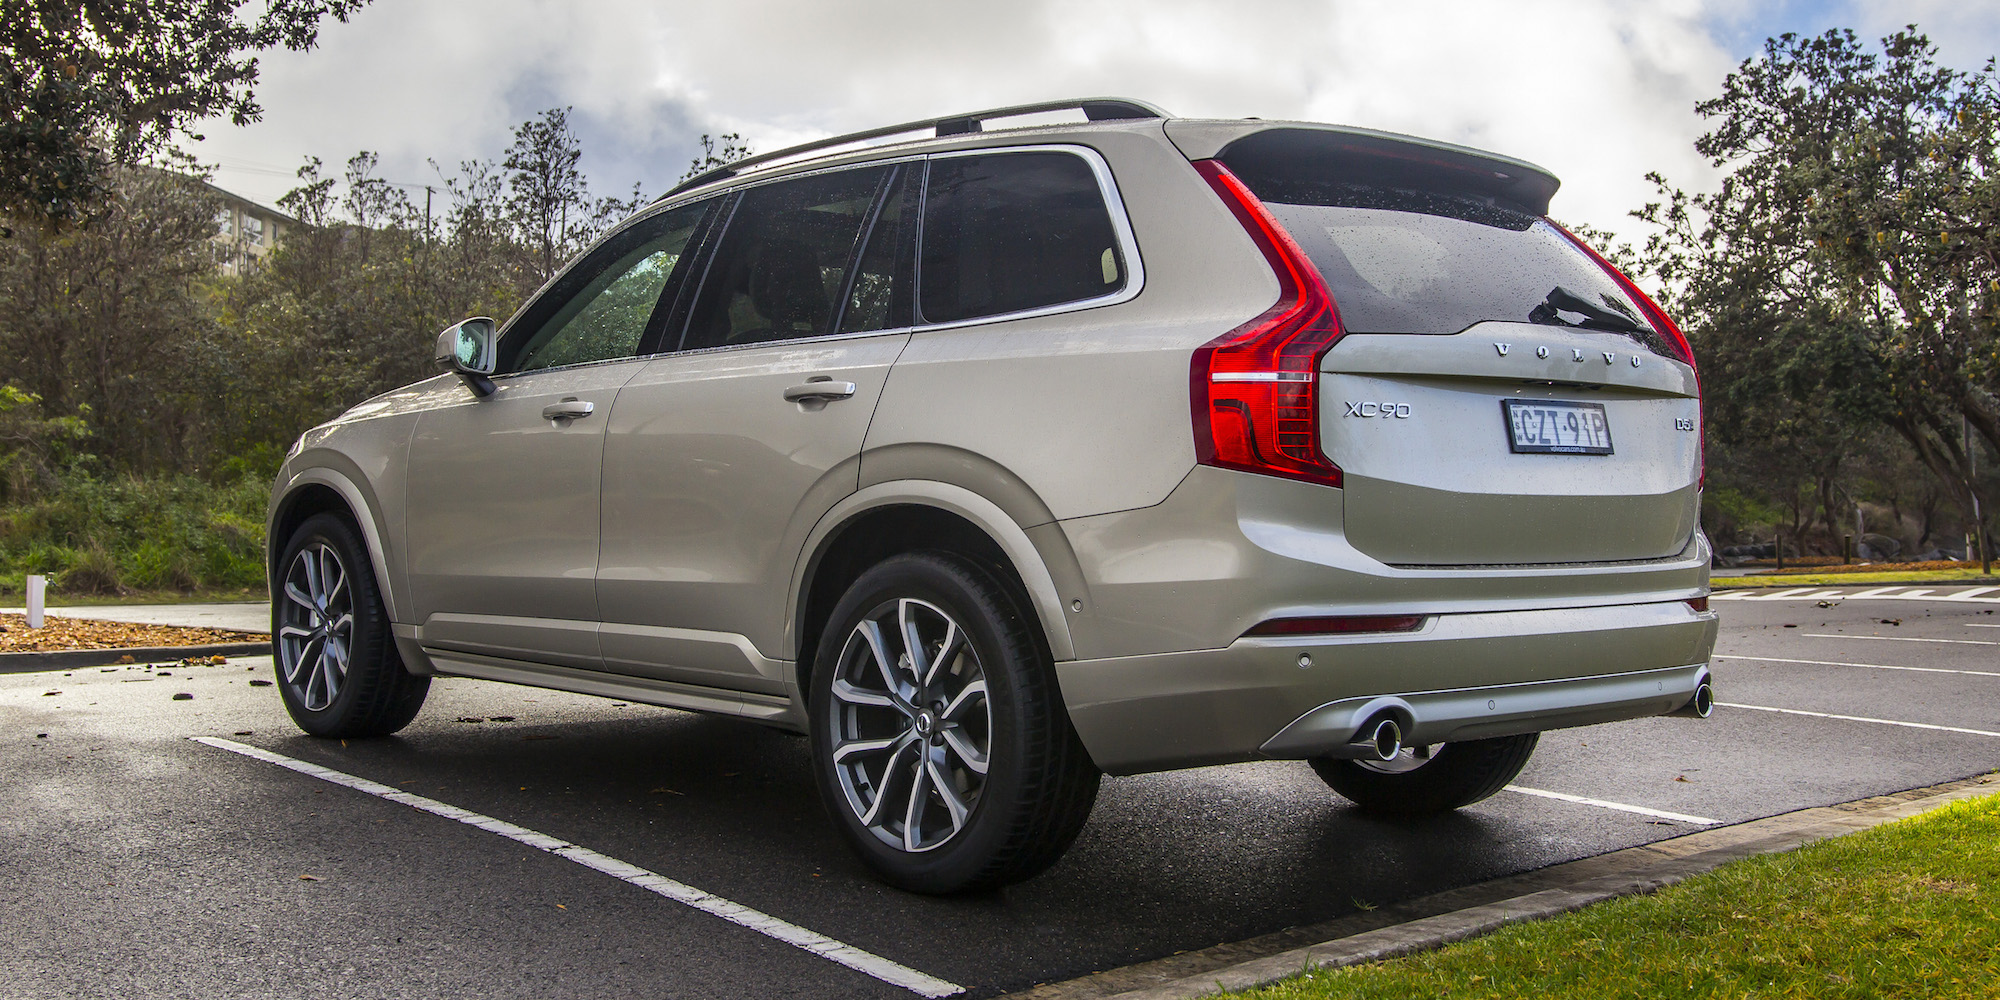 2006 Volvo Xc90 >> 2016 Volvo XC90 D5 Momentum Review - photos | CarAdvice